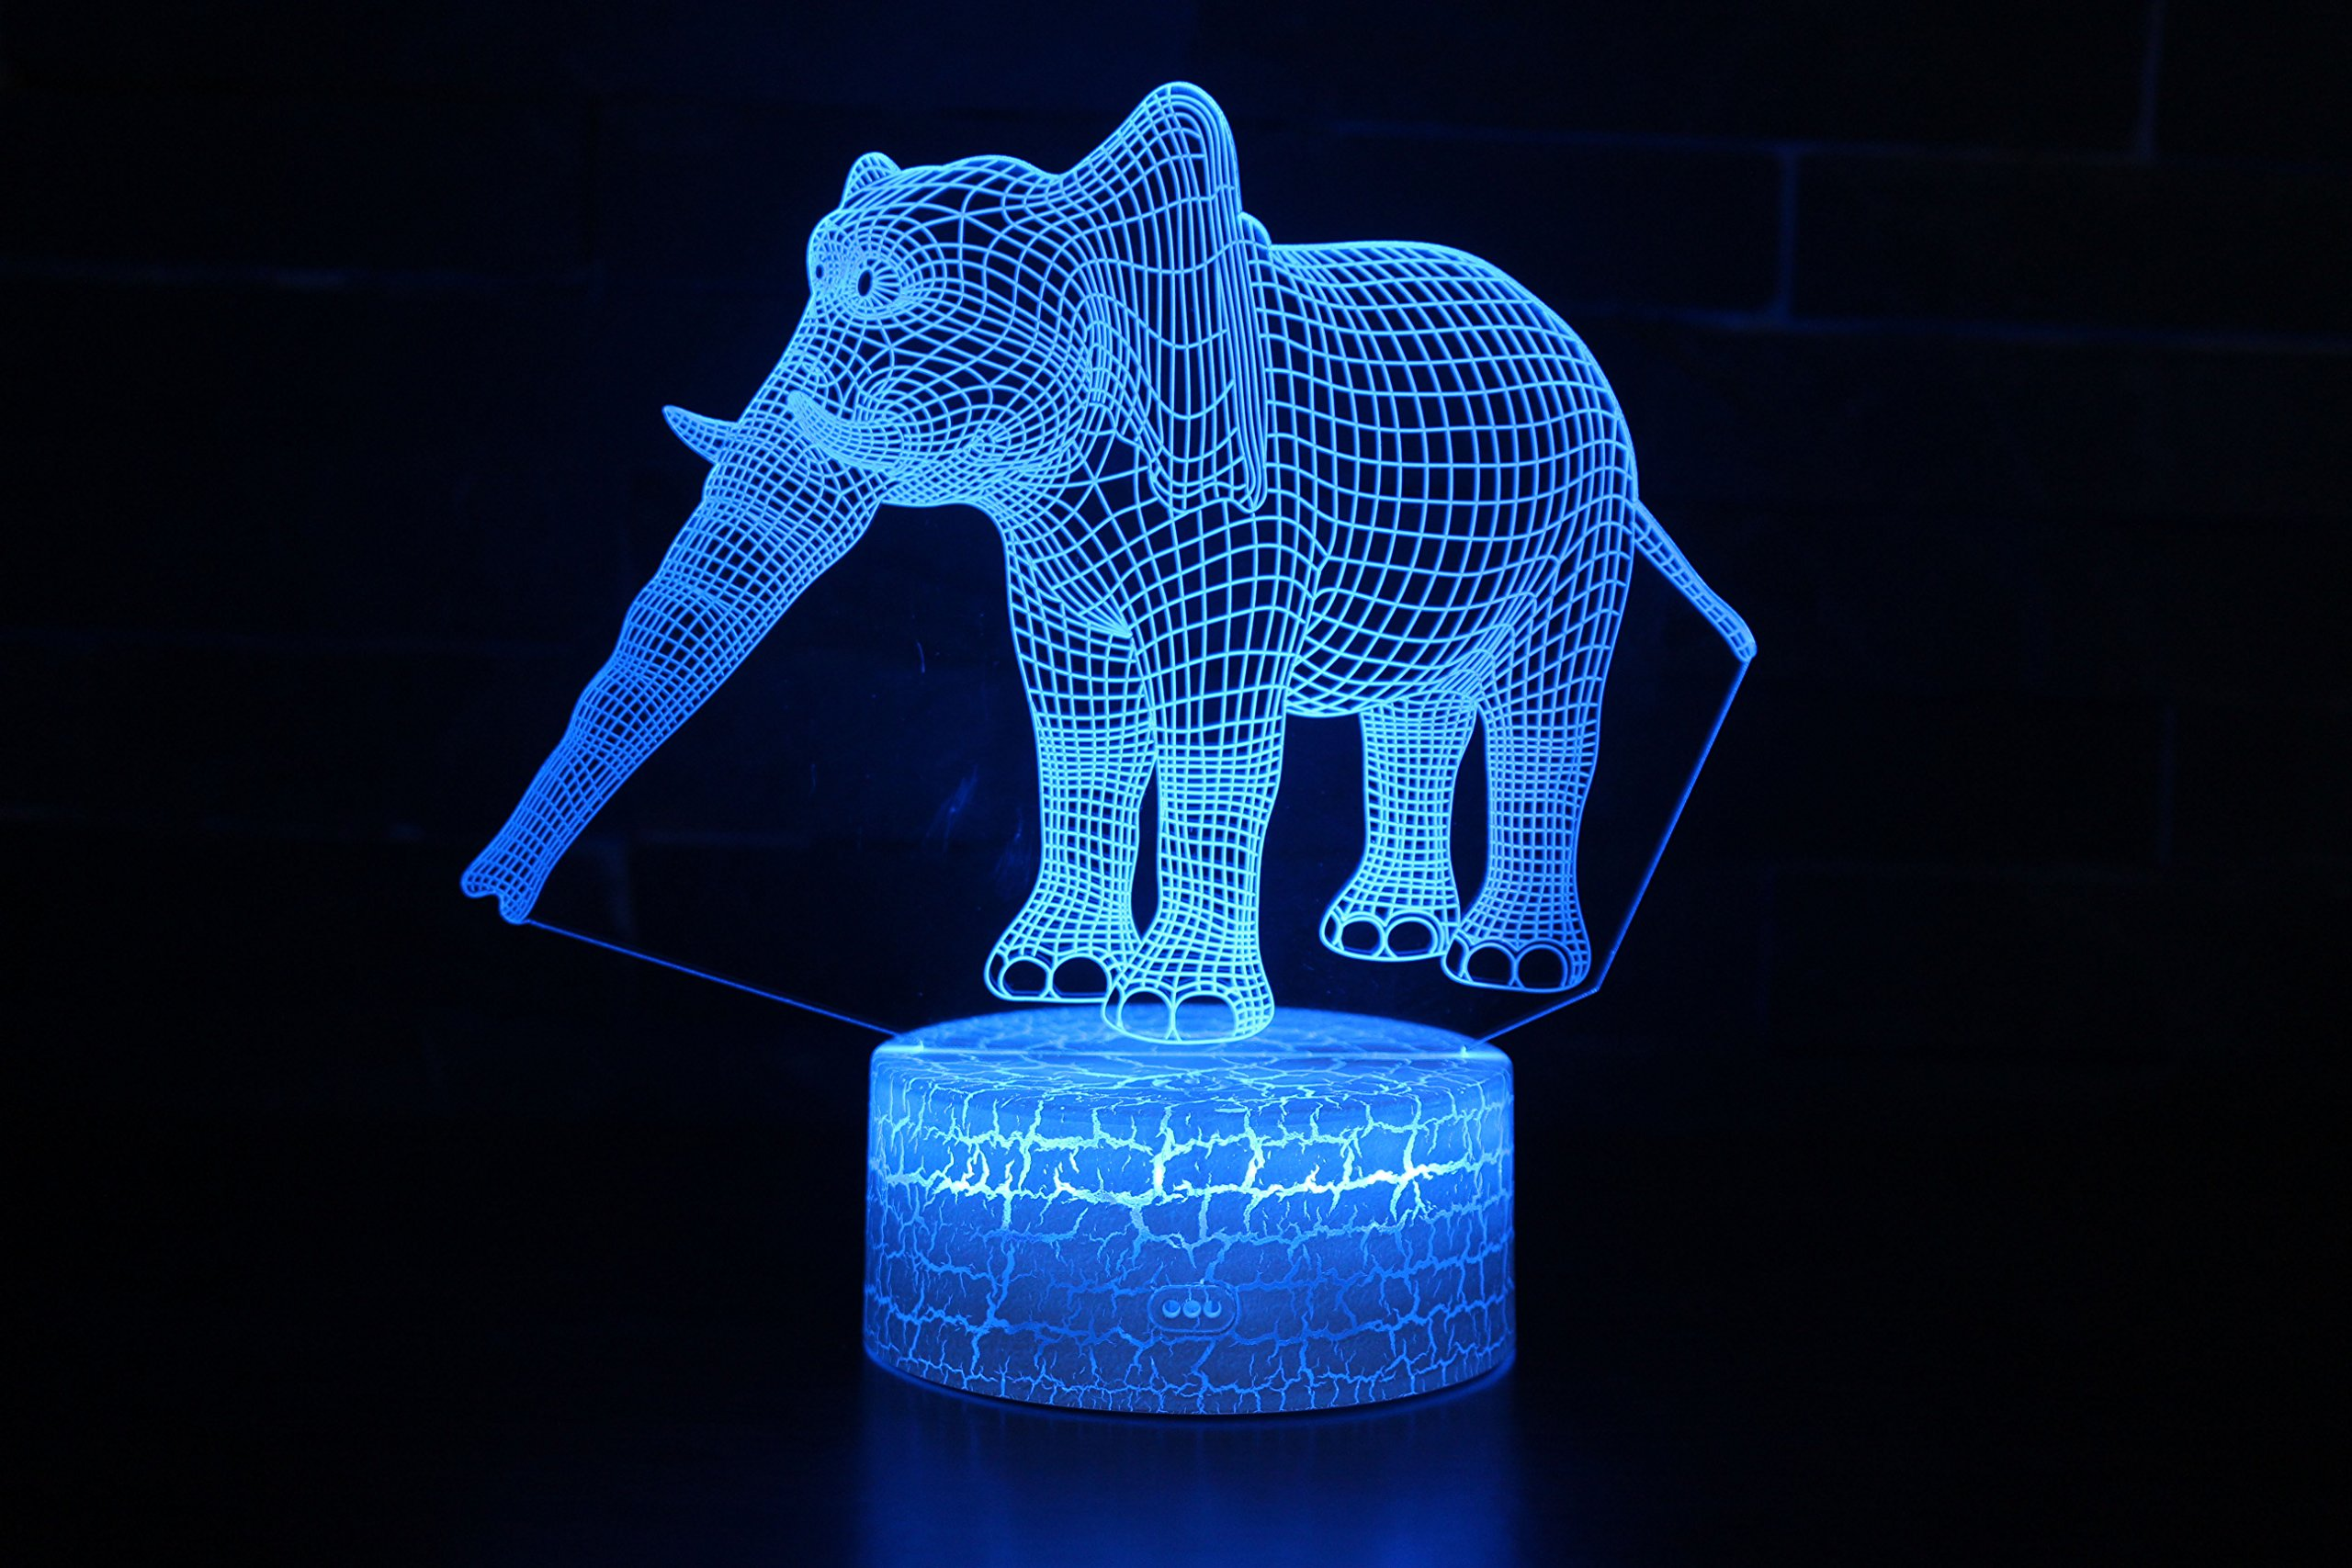 Long Nose Elephant Toys Visual 3D Lamp 2D Night Light Touch W/USB Cable Birthday Christmas Gift for Boys Kids Adult Acrylic Table Furniture Decorative Colorful 7 Color Change Household Accessories